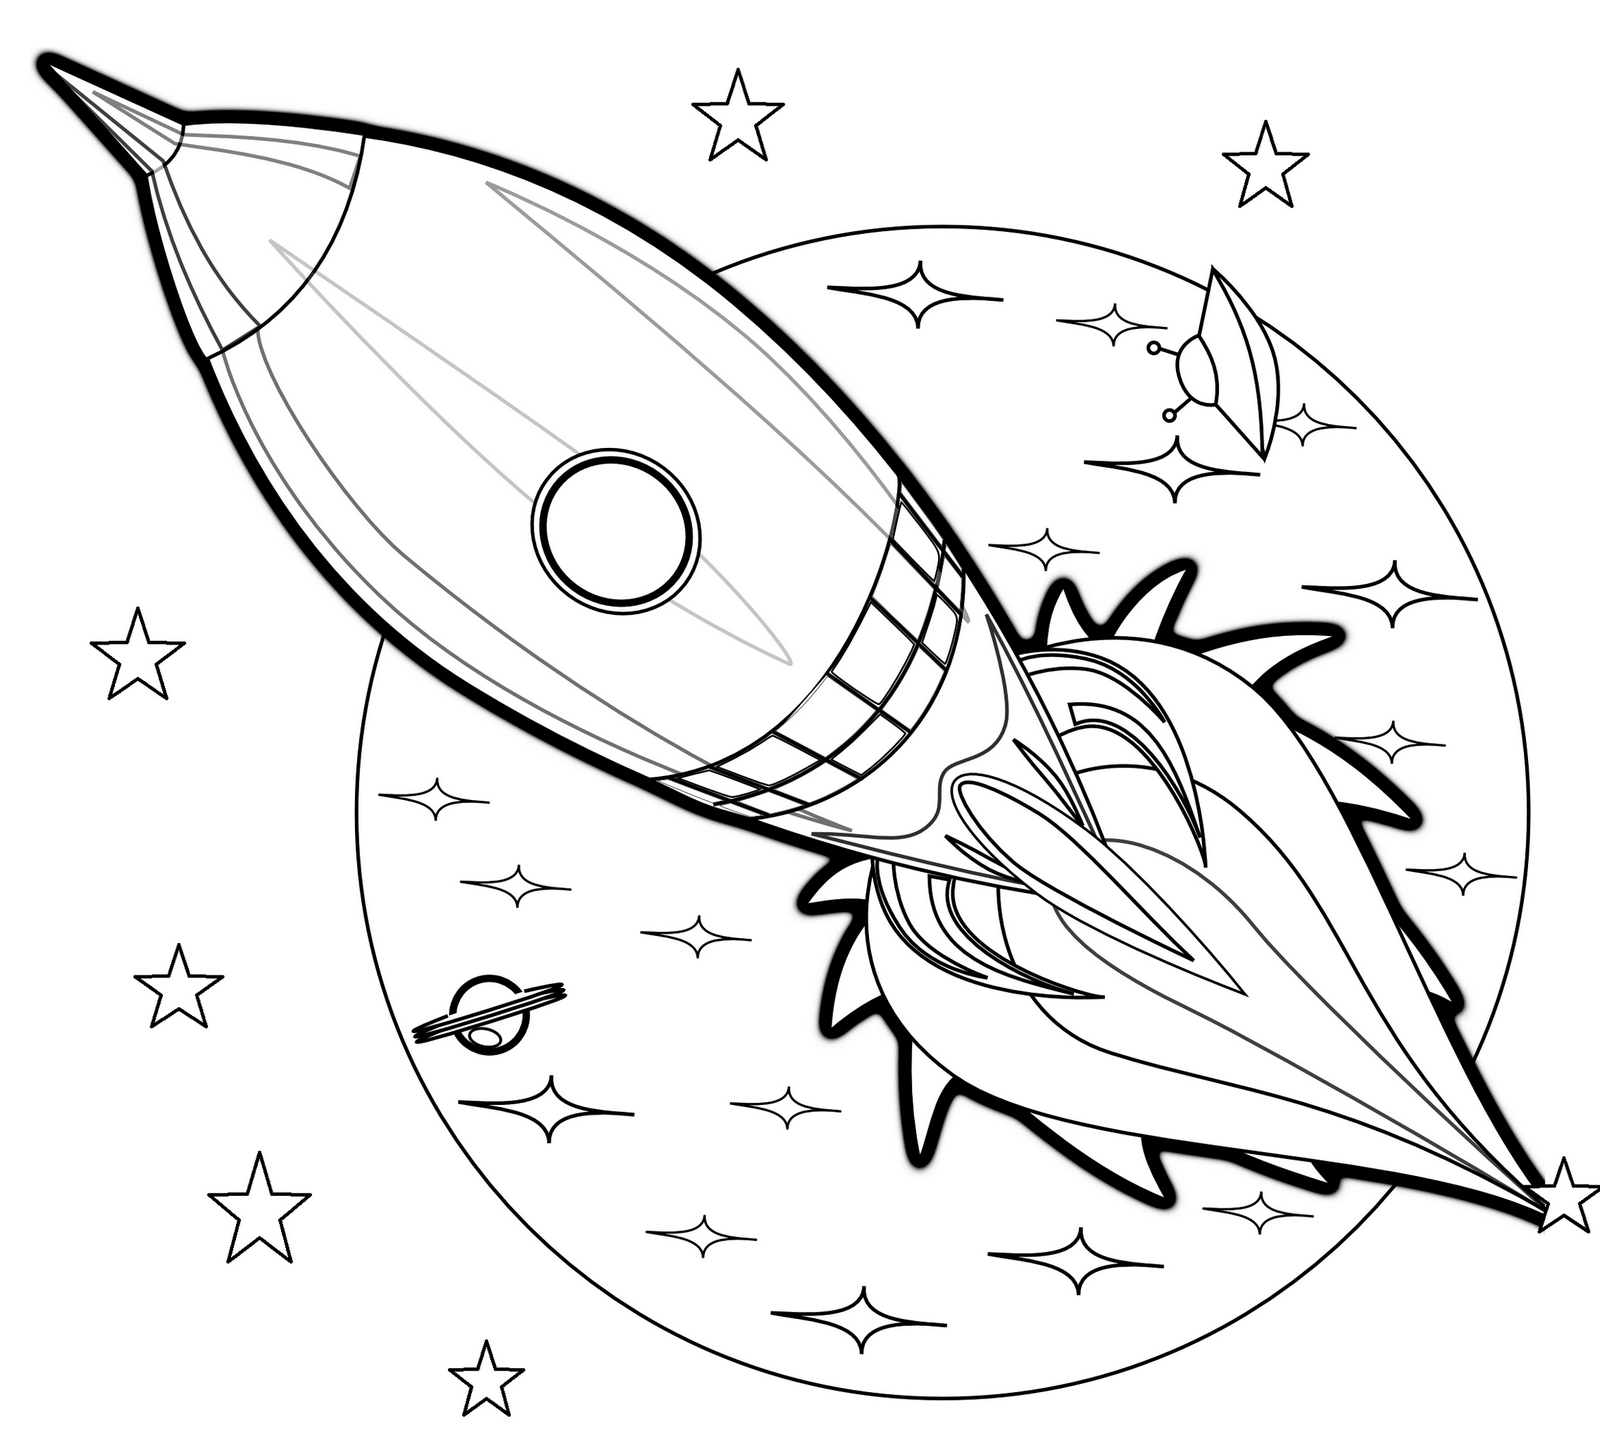 space rocket coloring pages - HD 1600×1436